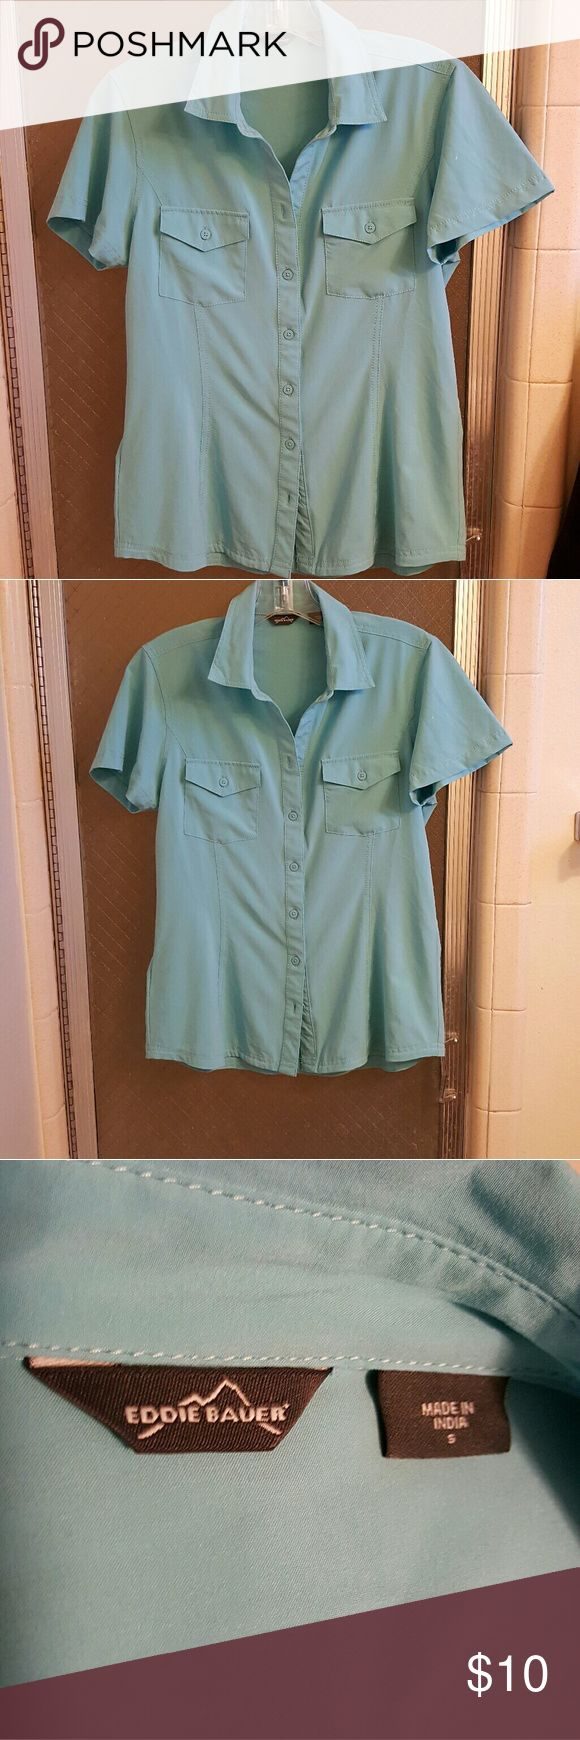 Eddie Bauer Teal/Mint button up Blouse, Small Eddie Bauer polyester Teal mint blouse, small. Super silky soft and in great shape Eddie Bauer Tops Blouses